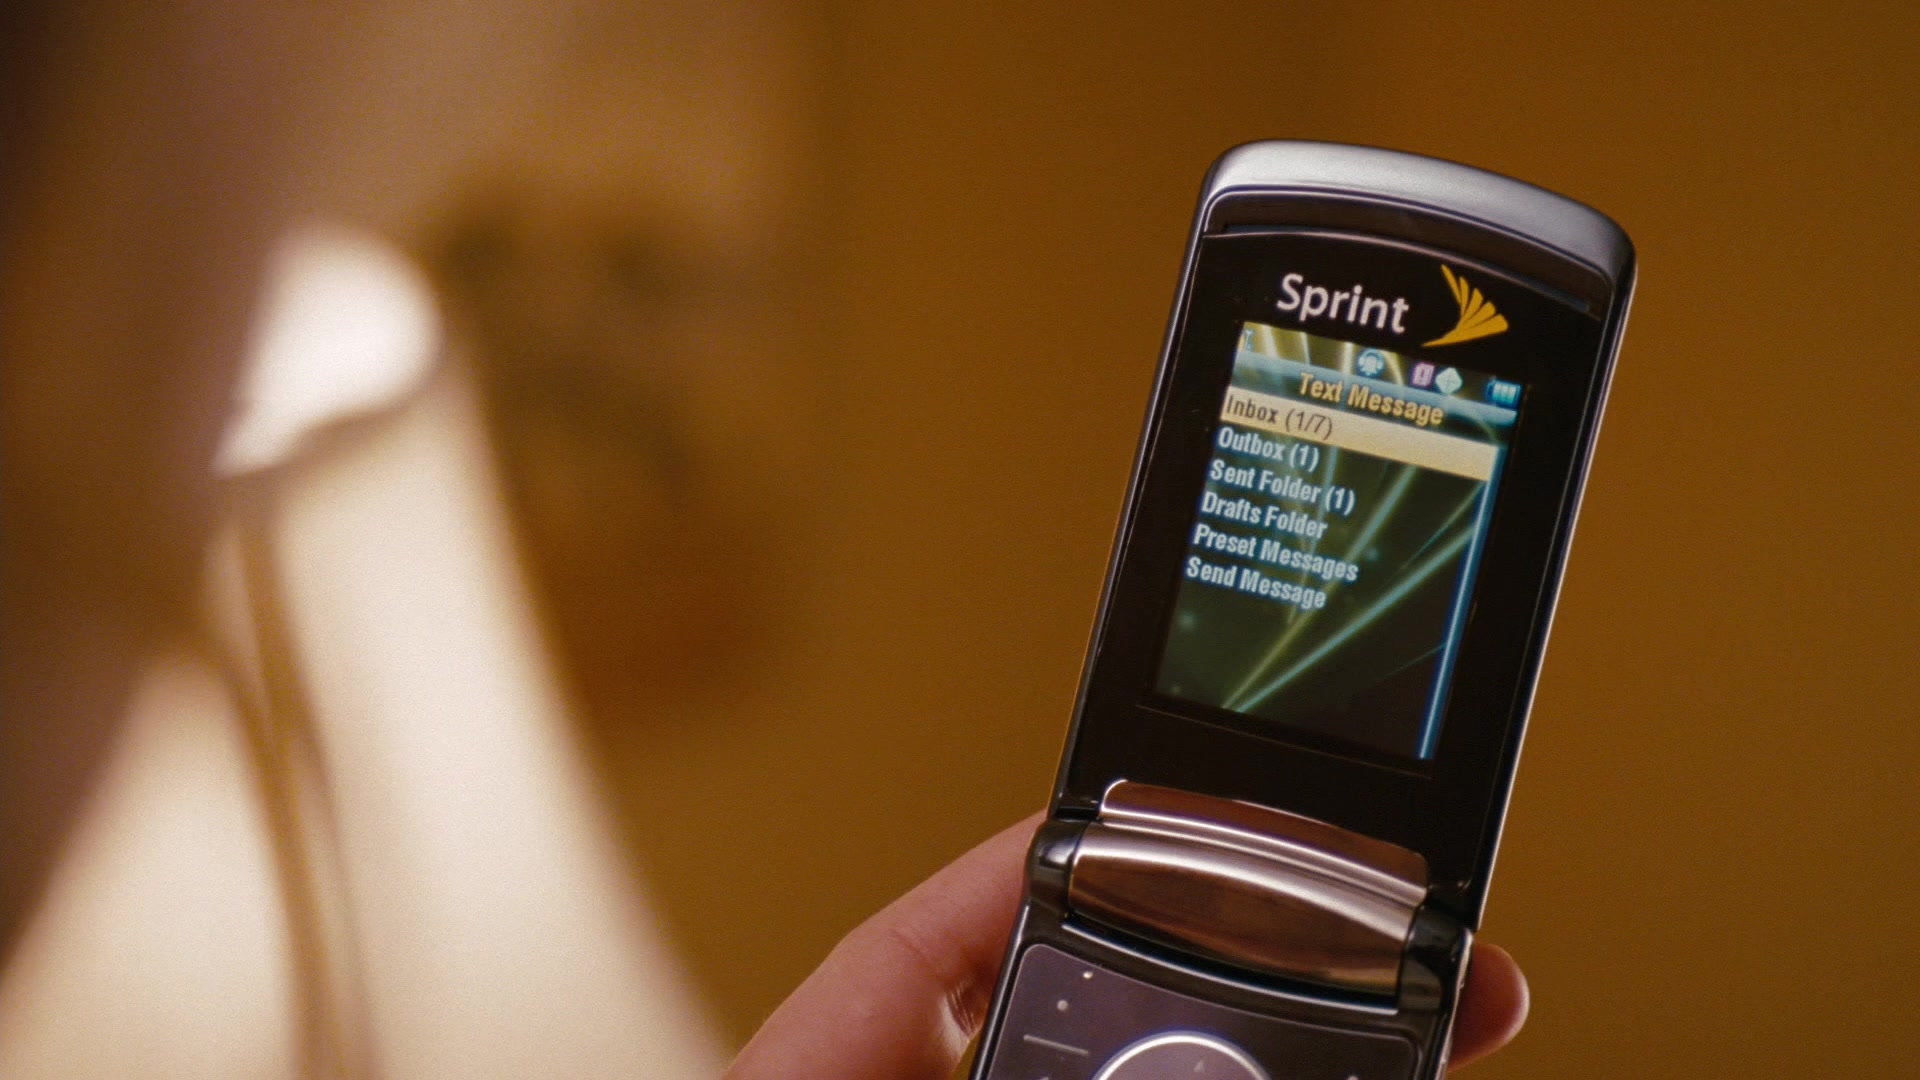 Sprint Cell Phone Used by Katherine Heigl in The Ugly Truth